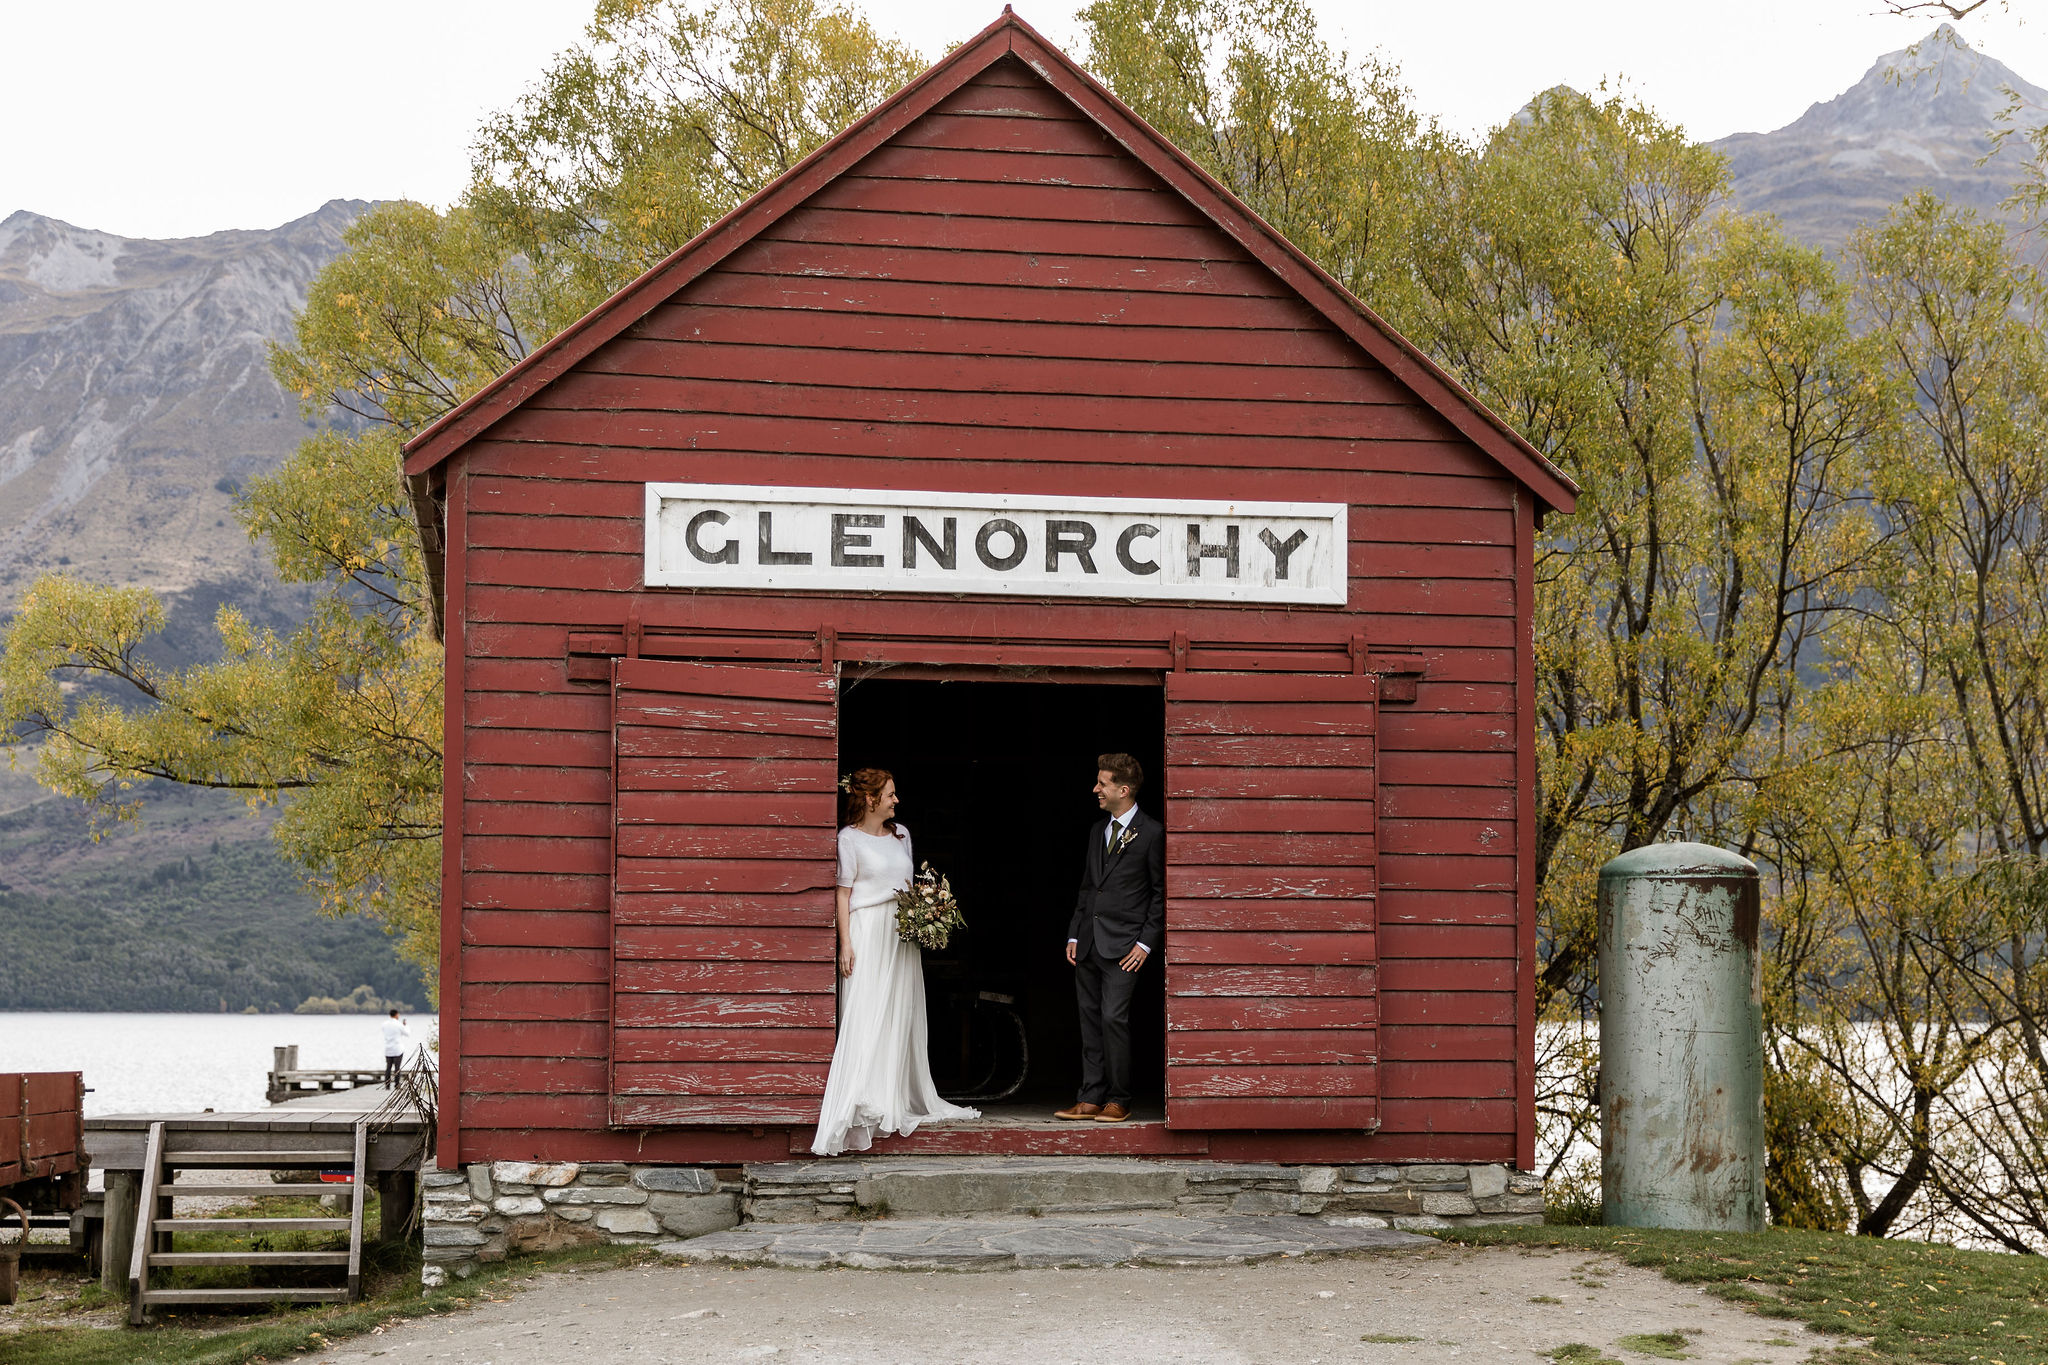 Glenorchy Red Shed - Susan Miller Photography